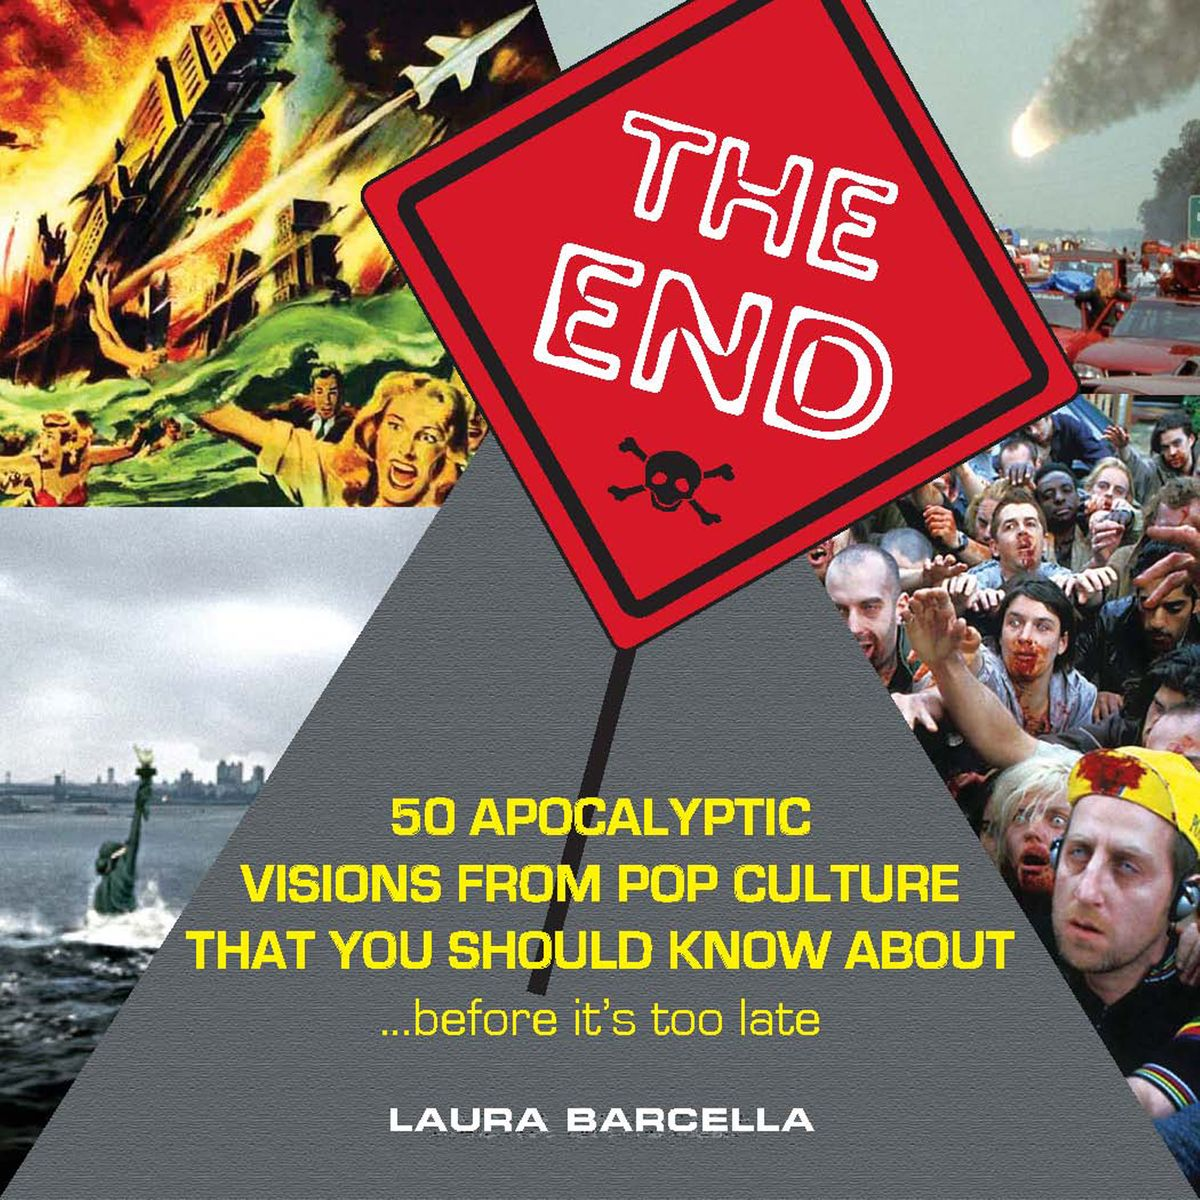 the end - 50 Apocalyptic Visions From Pop Culture That You Should Know About…Before It's Too Late(Zest Books, July 2012)